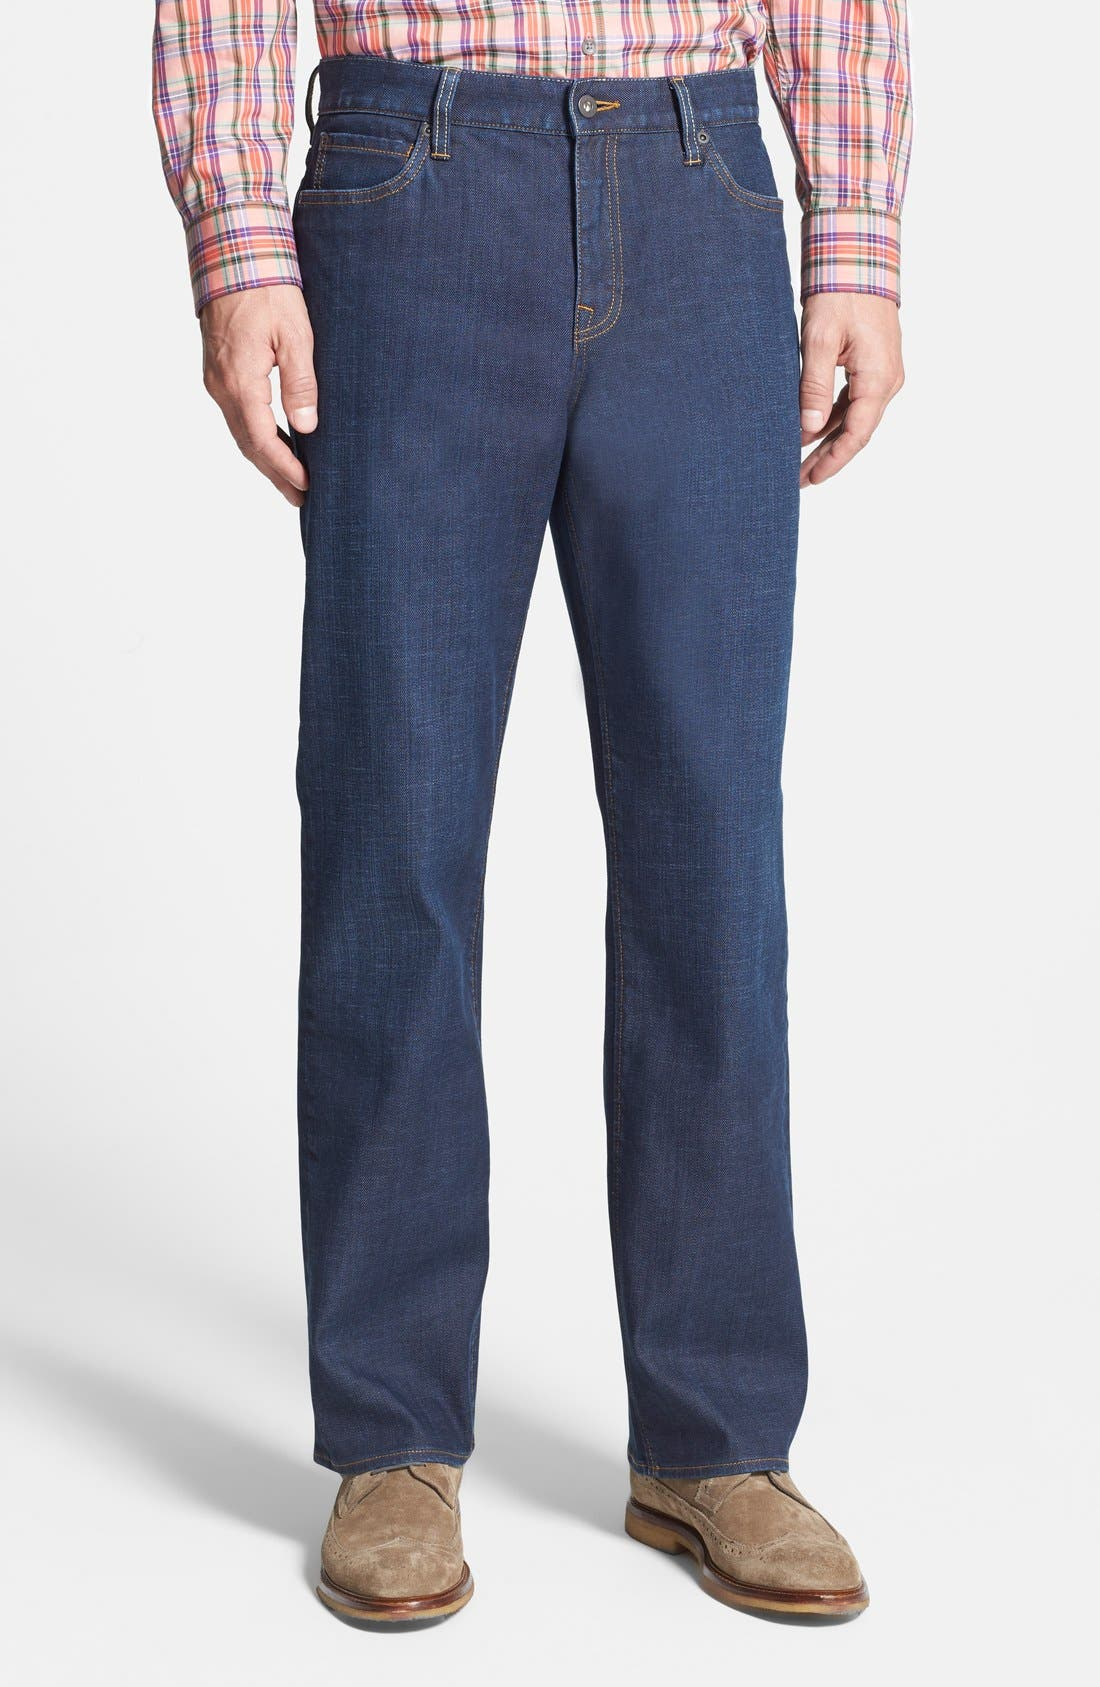 Greenwood Relaxed Fit Jeans,                             Main thumbnail 1, color,                             Venice Blue